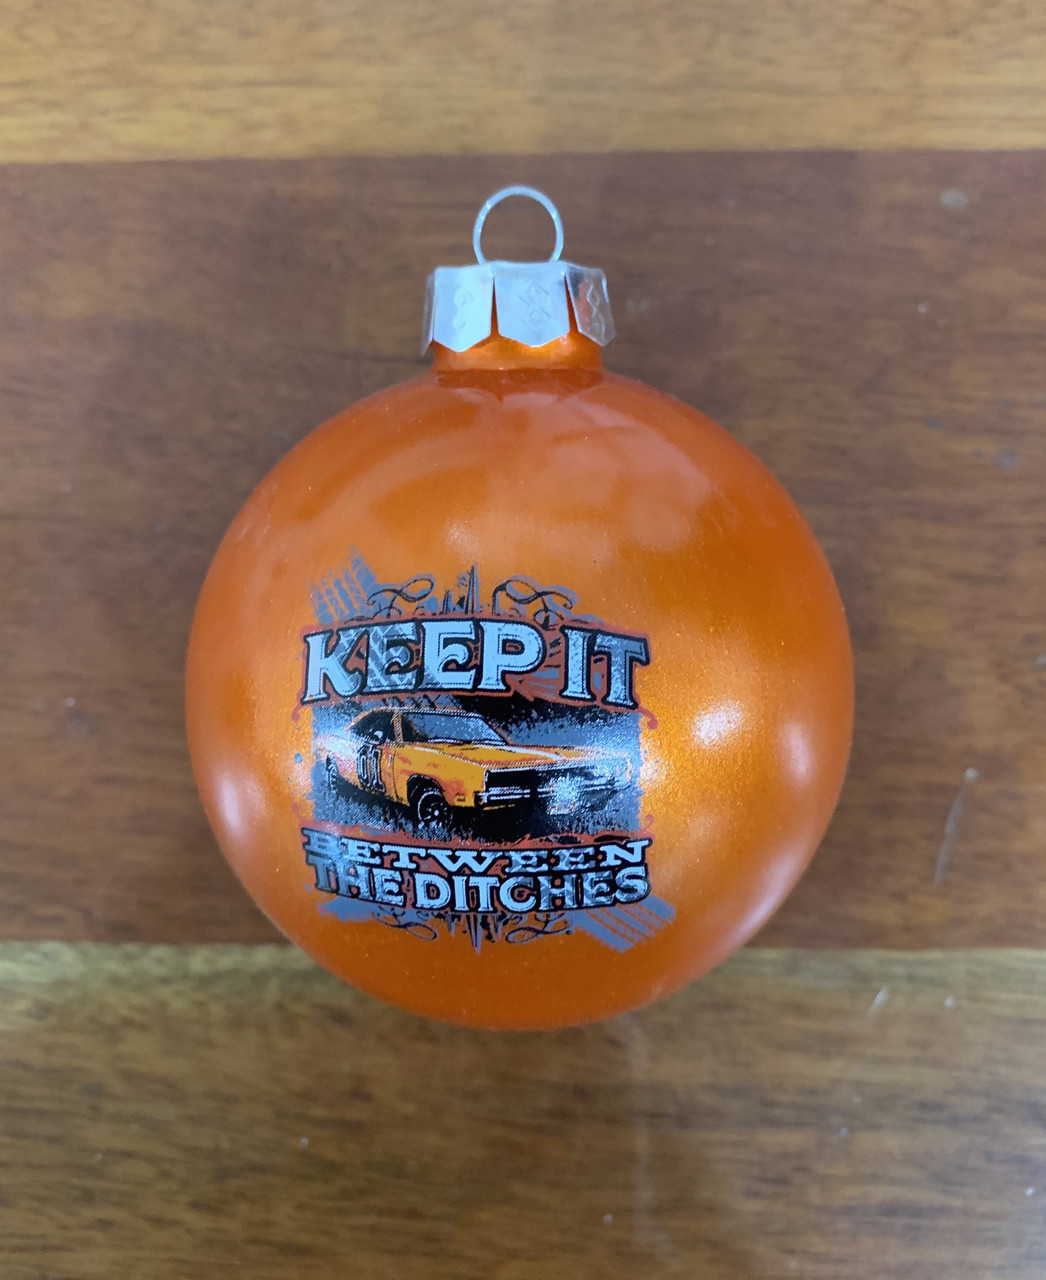 Cooter's Keep It Between The Ditches Christmas Ornament